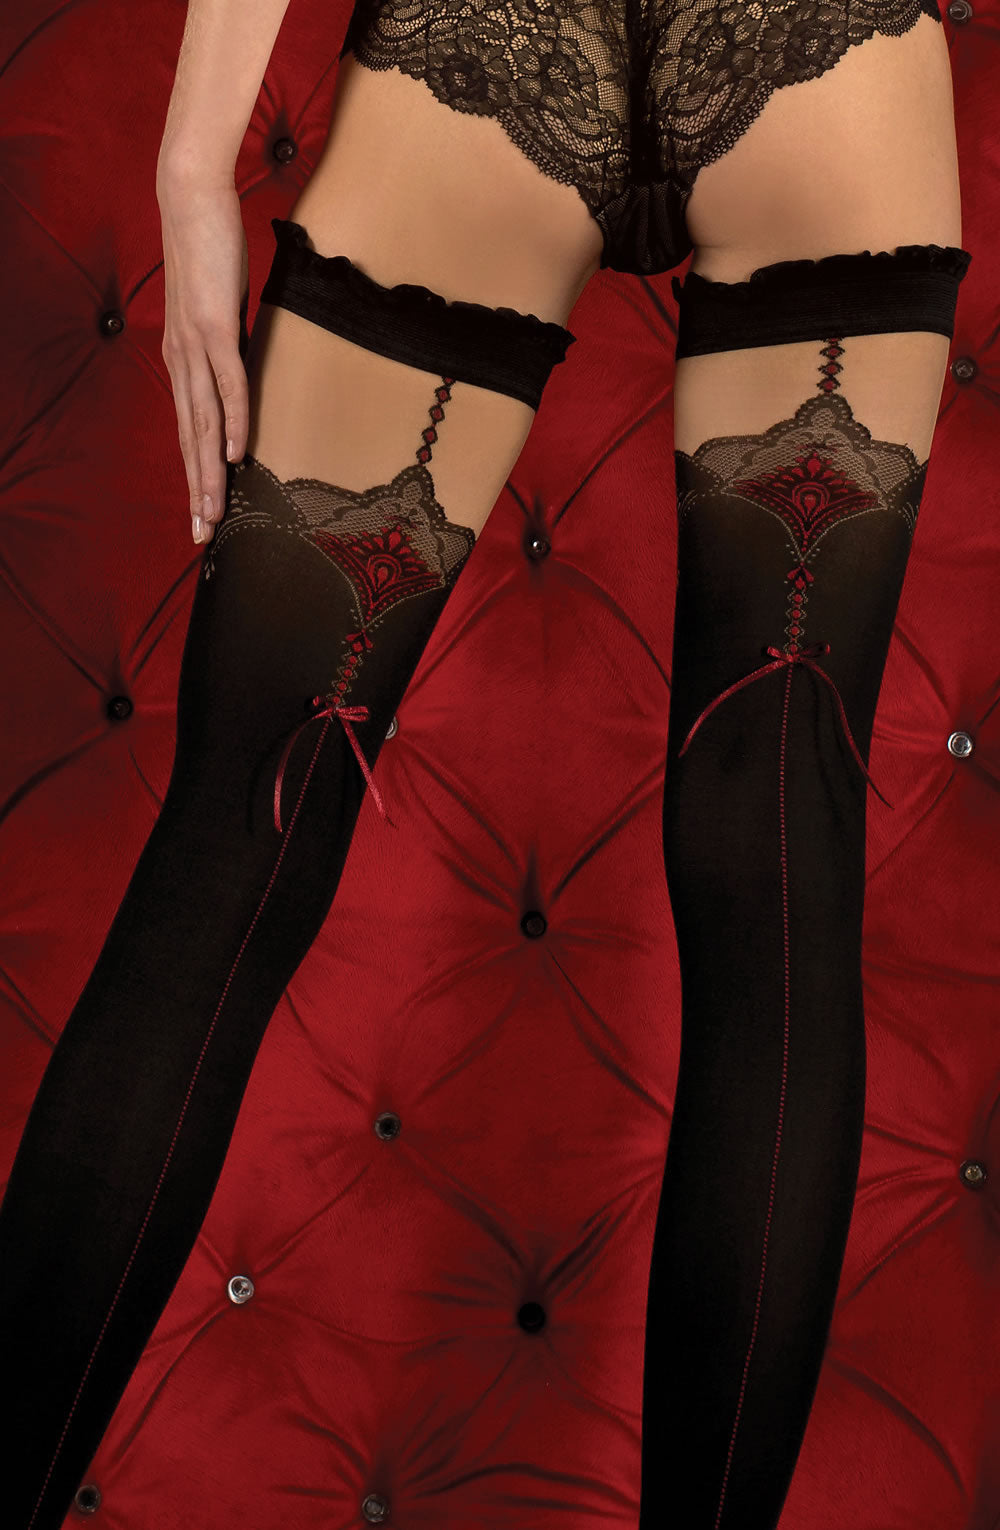 Ballerina Luxury Hold Ups Nero In Black/Red-346